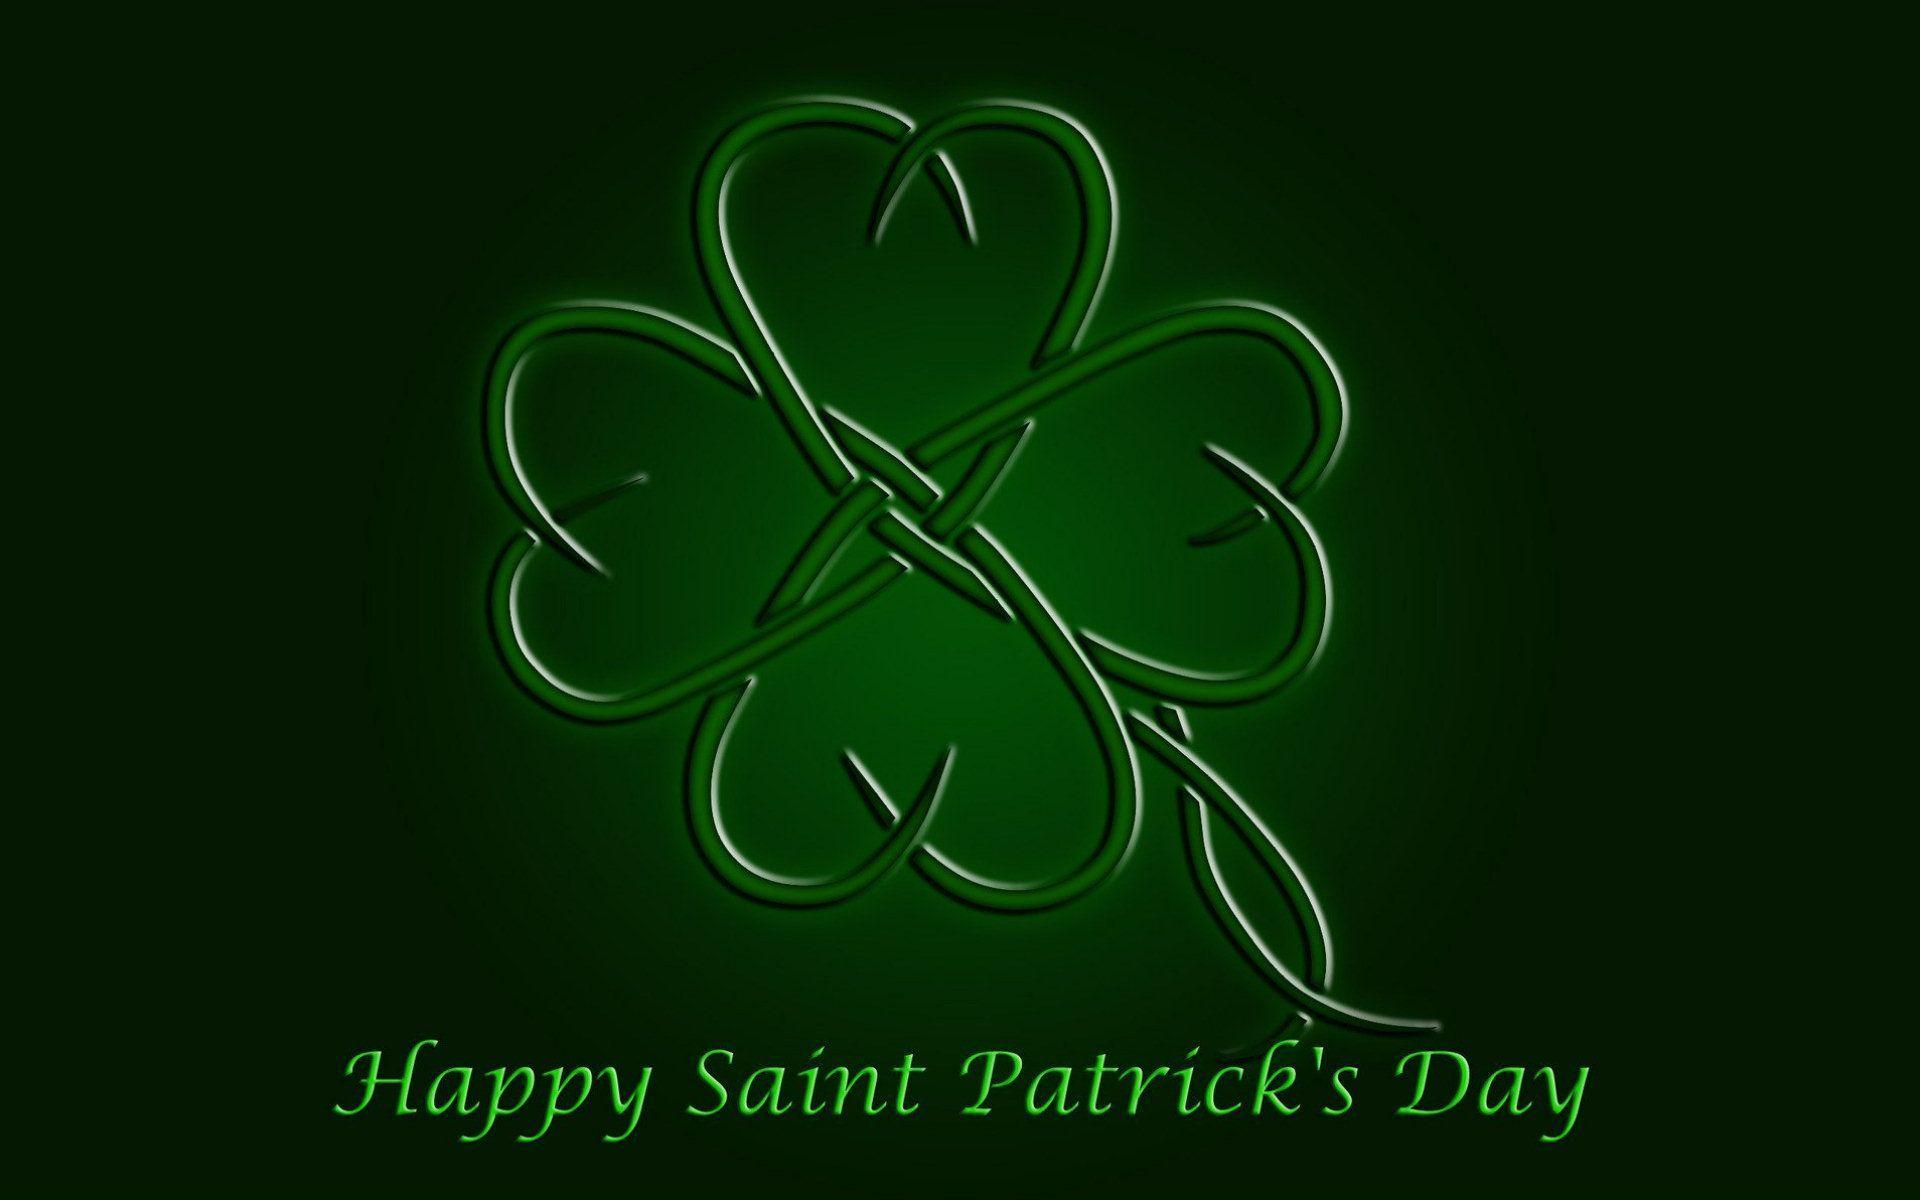 St Patricks Day Computer Wallpapers, Desktop Backgrounds 1920x1200